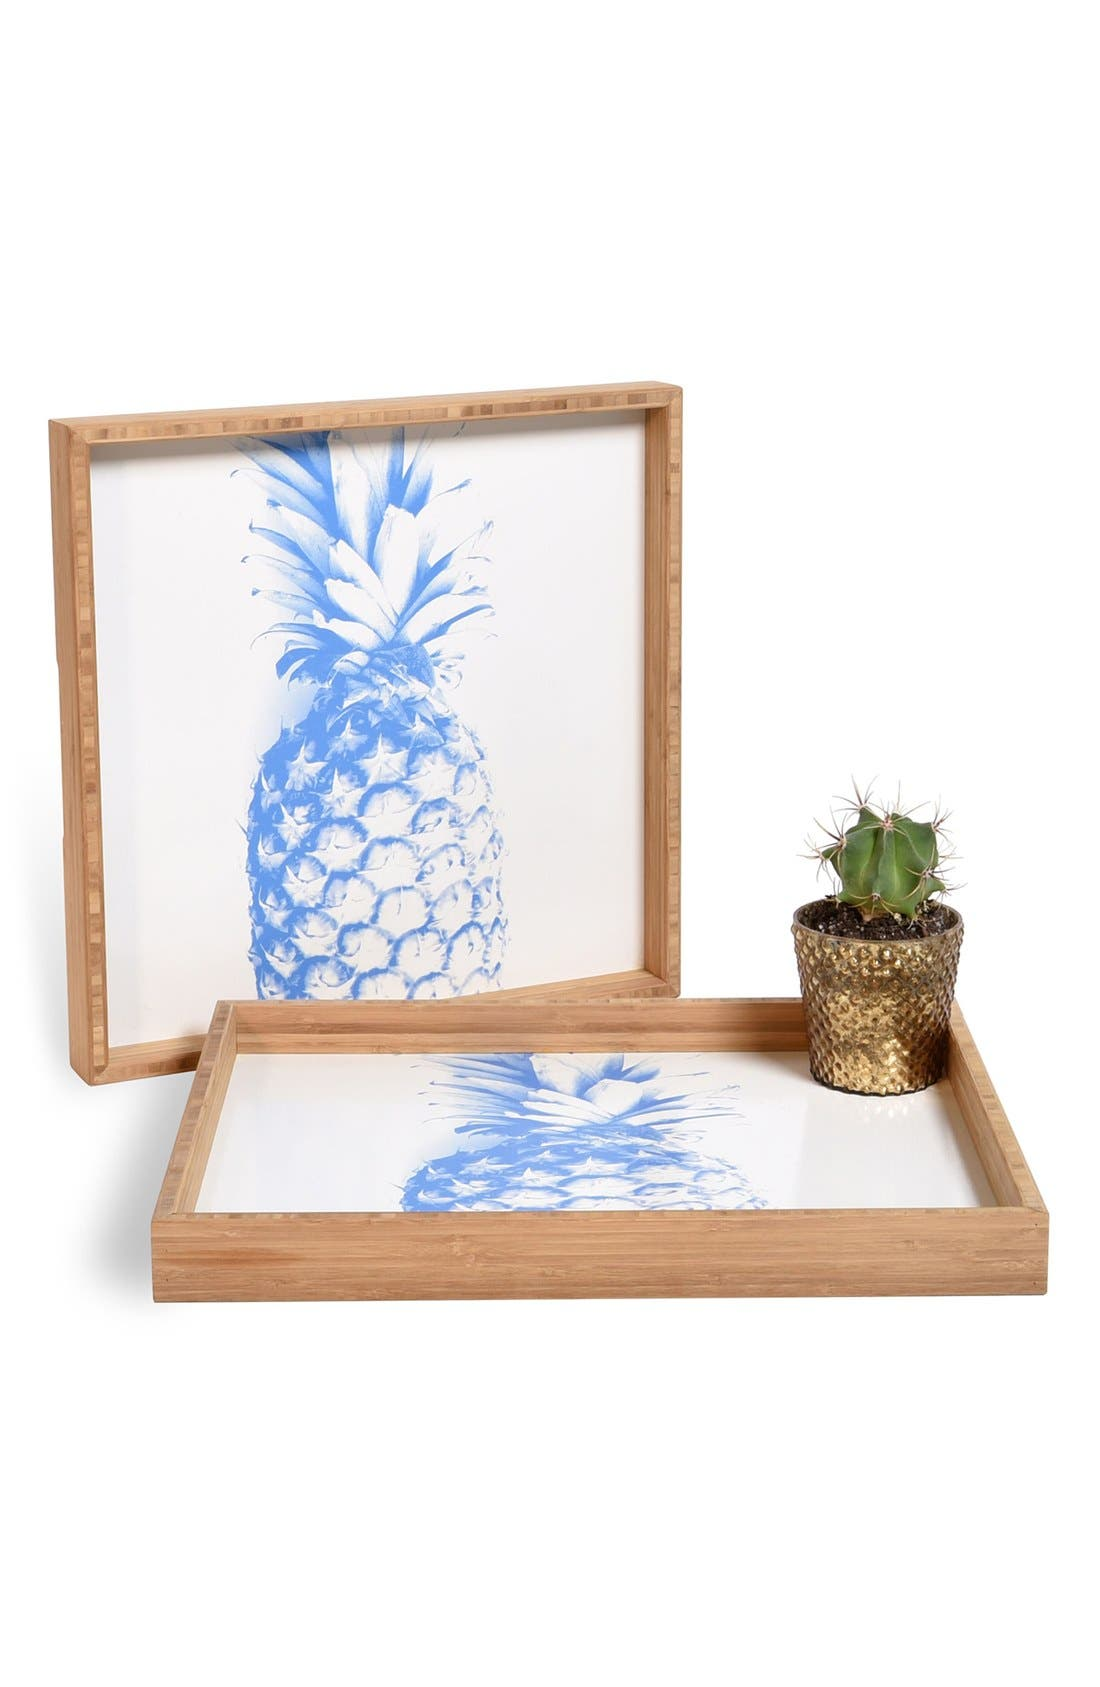 'Pineapple' Decorative Serving Tray,                             Main thumbnail 1, color,                             400